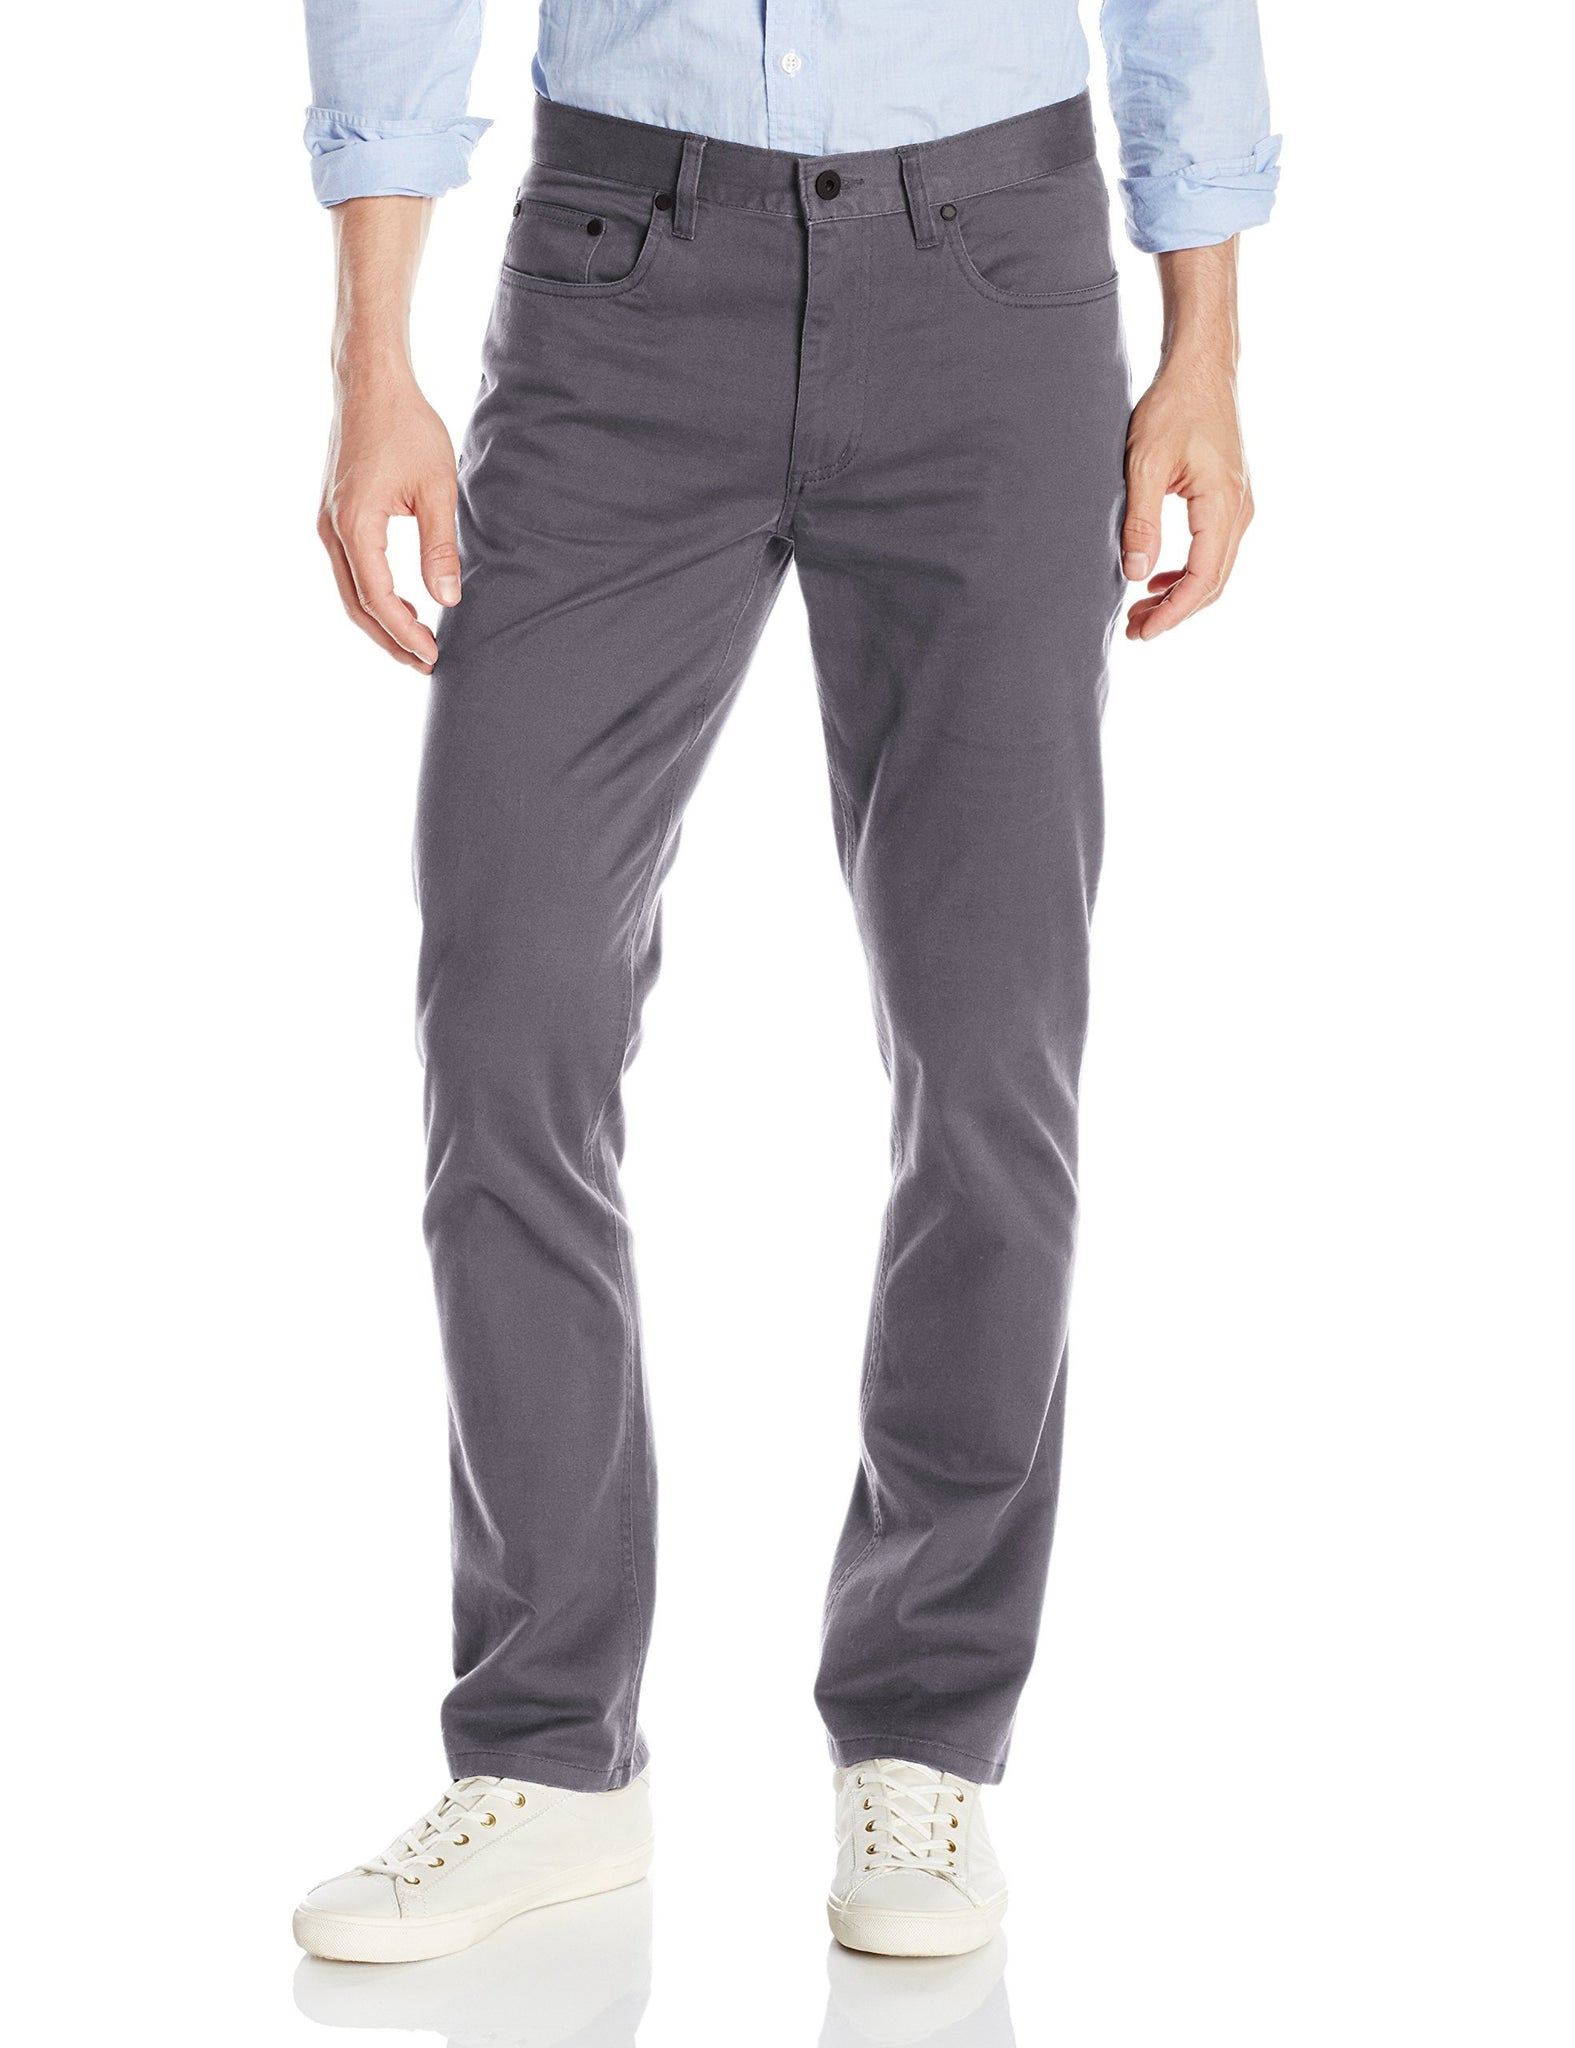 Kenneth Cole REACTION Hematite 5 Pocket Pant